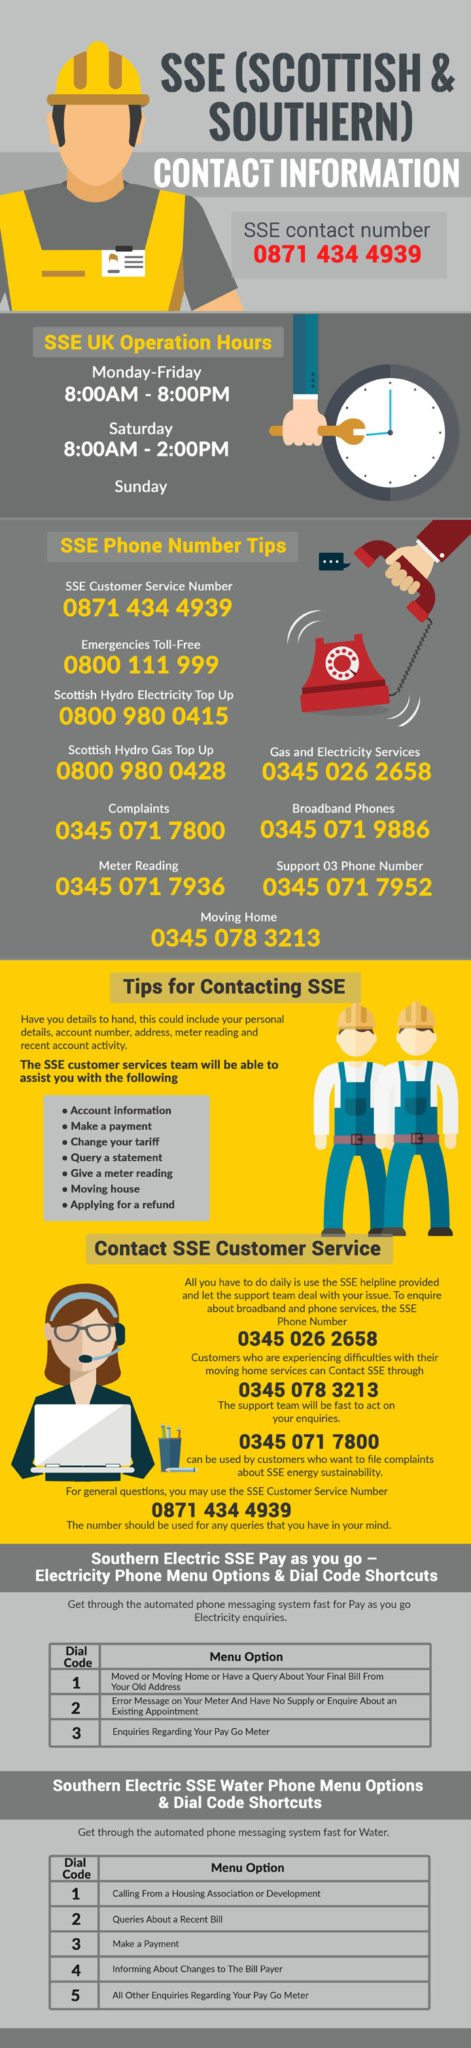 SSE (Scottish & Southern) Helpline